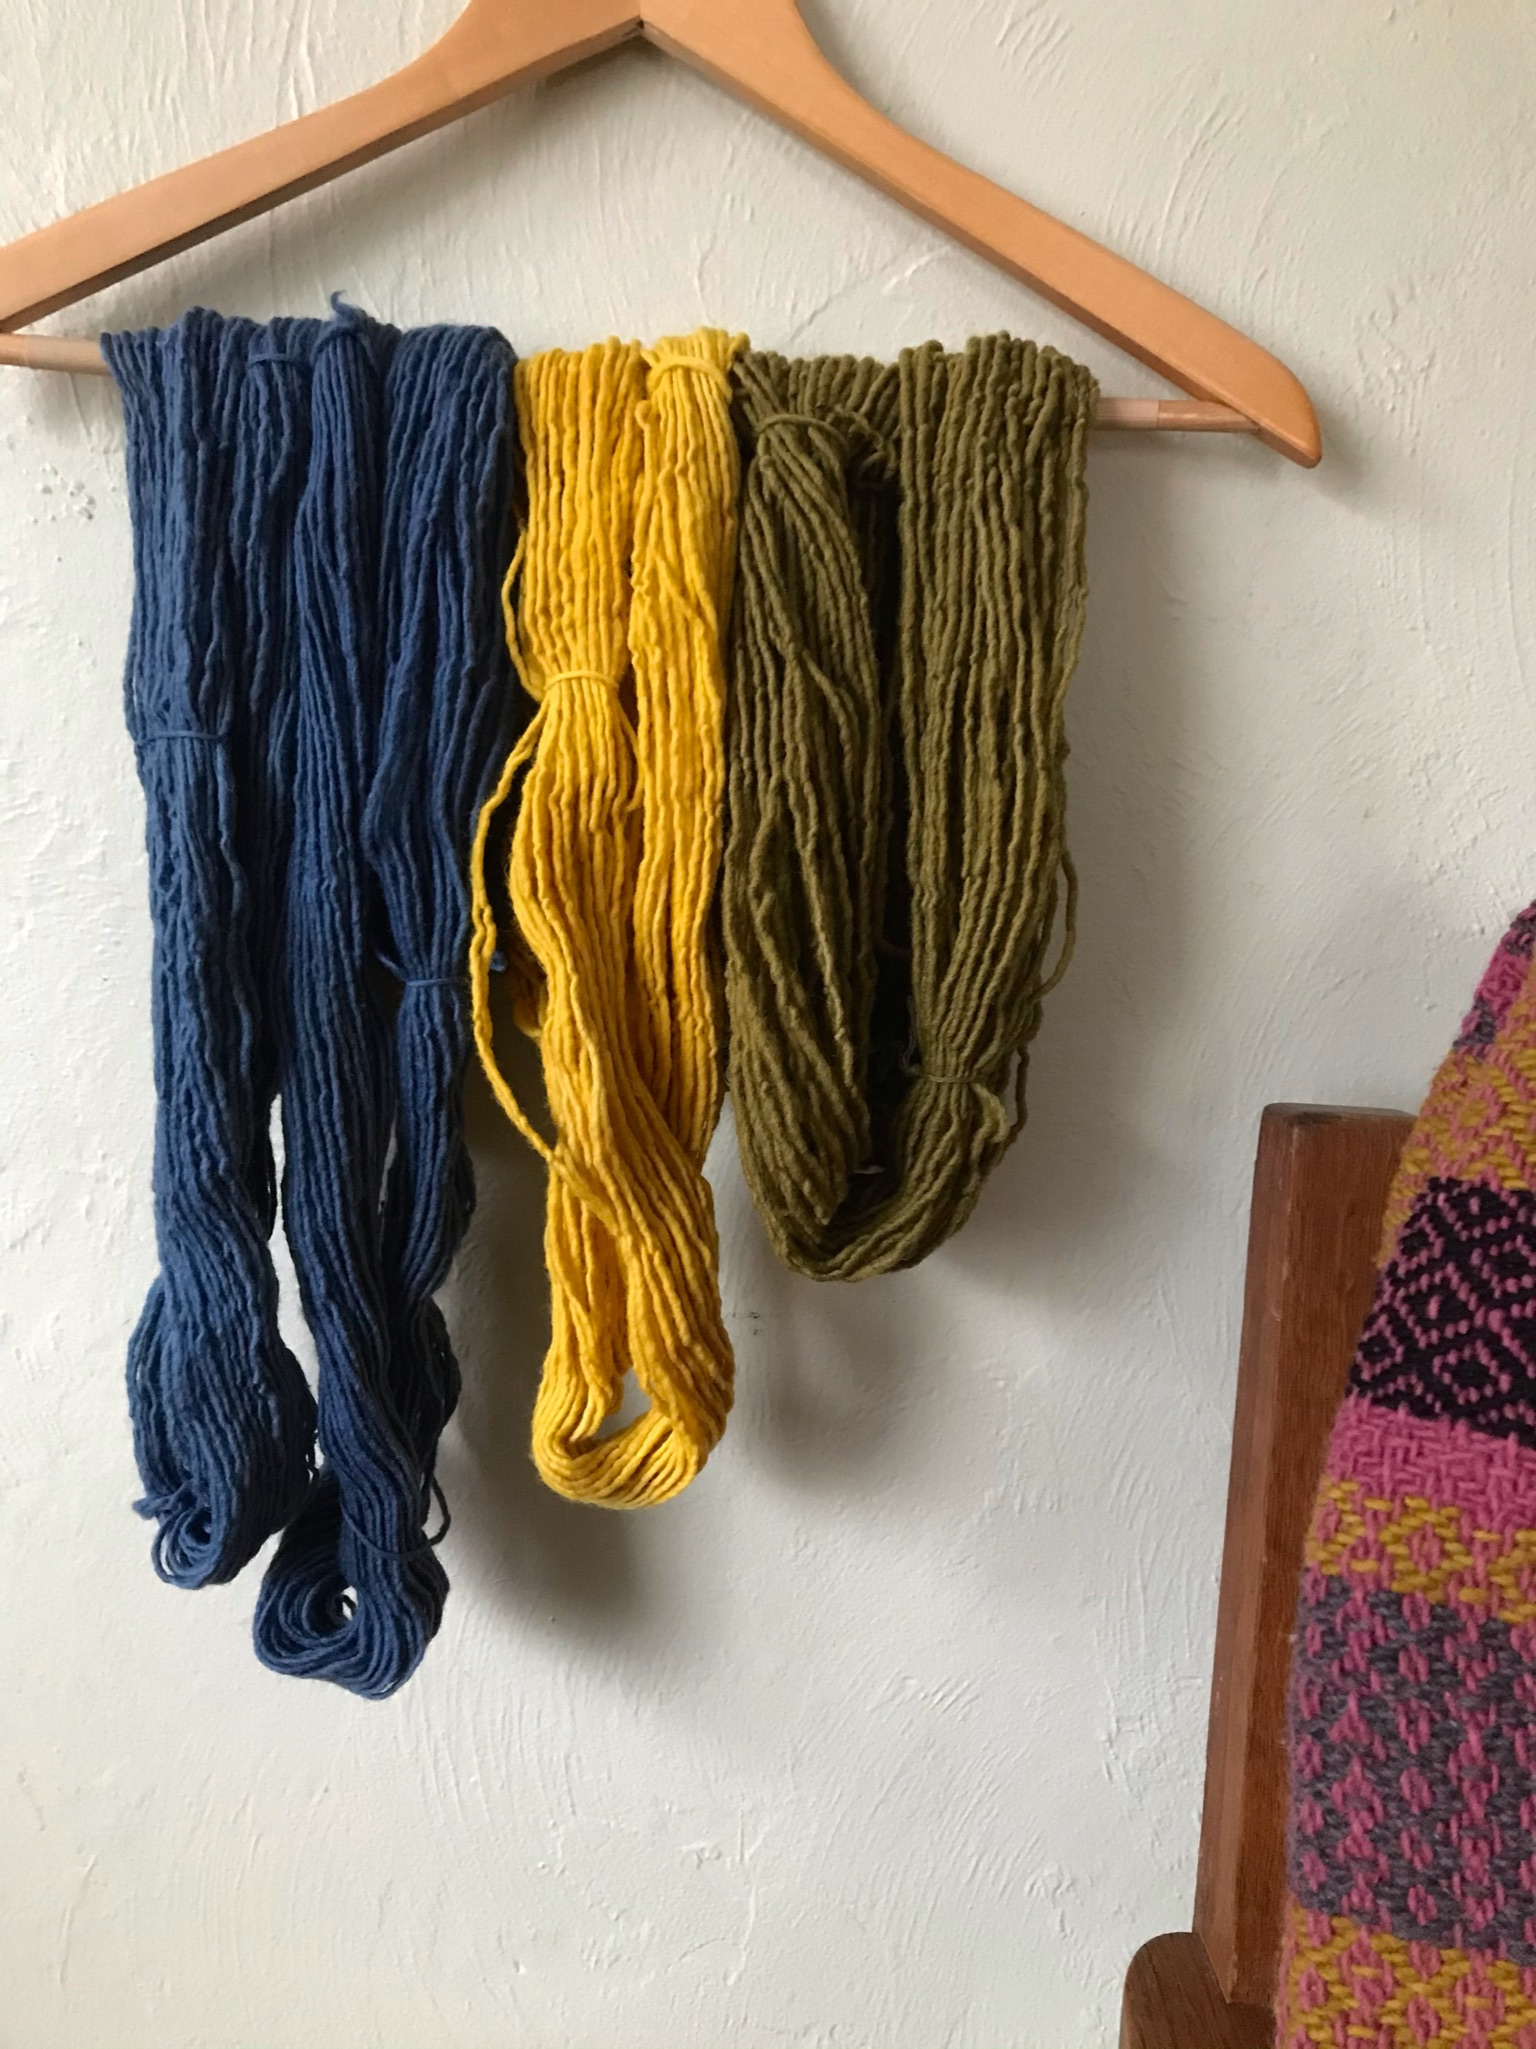 Yarns in blue, yellow, and green.